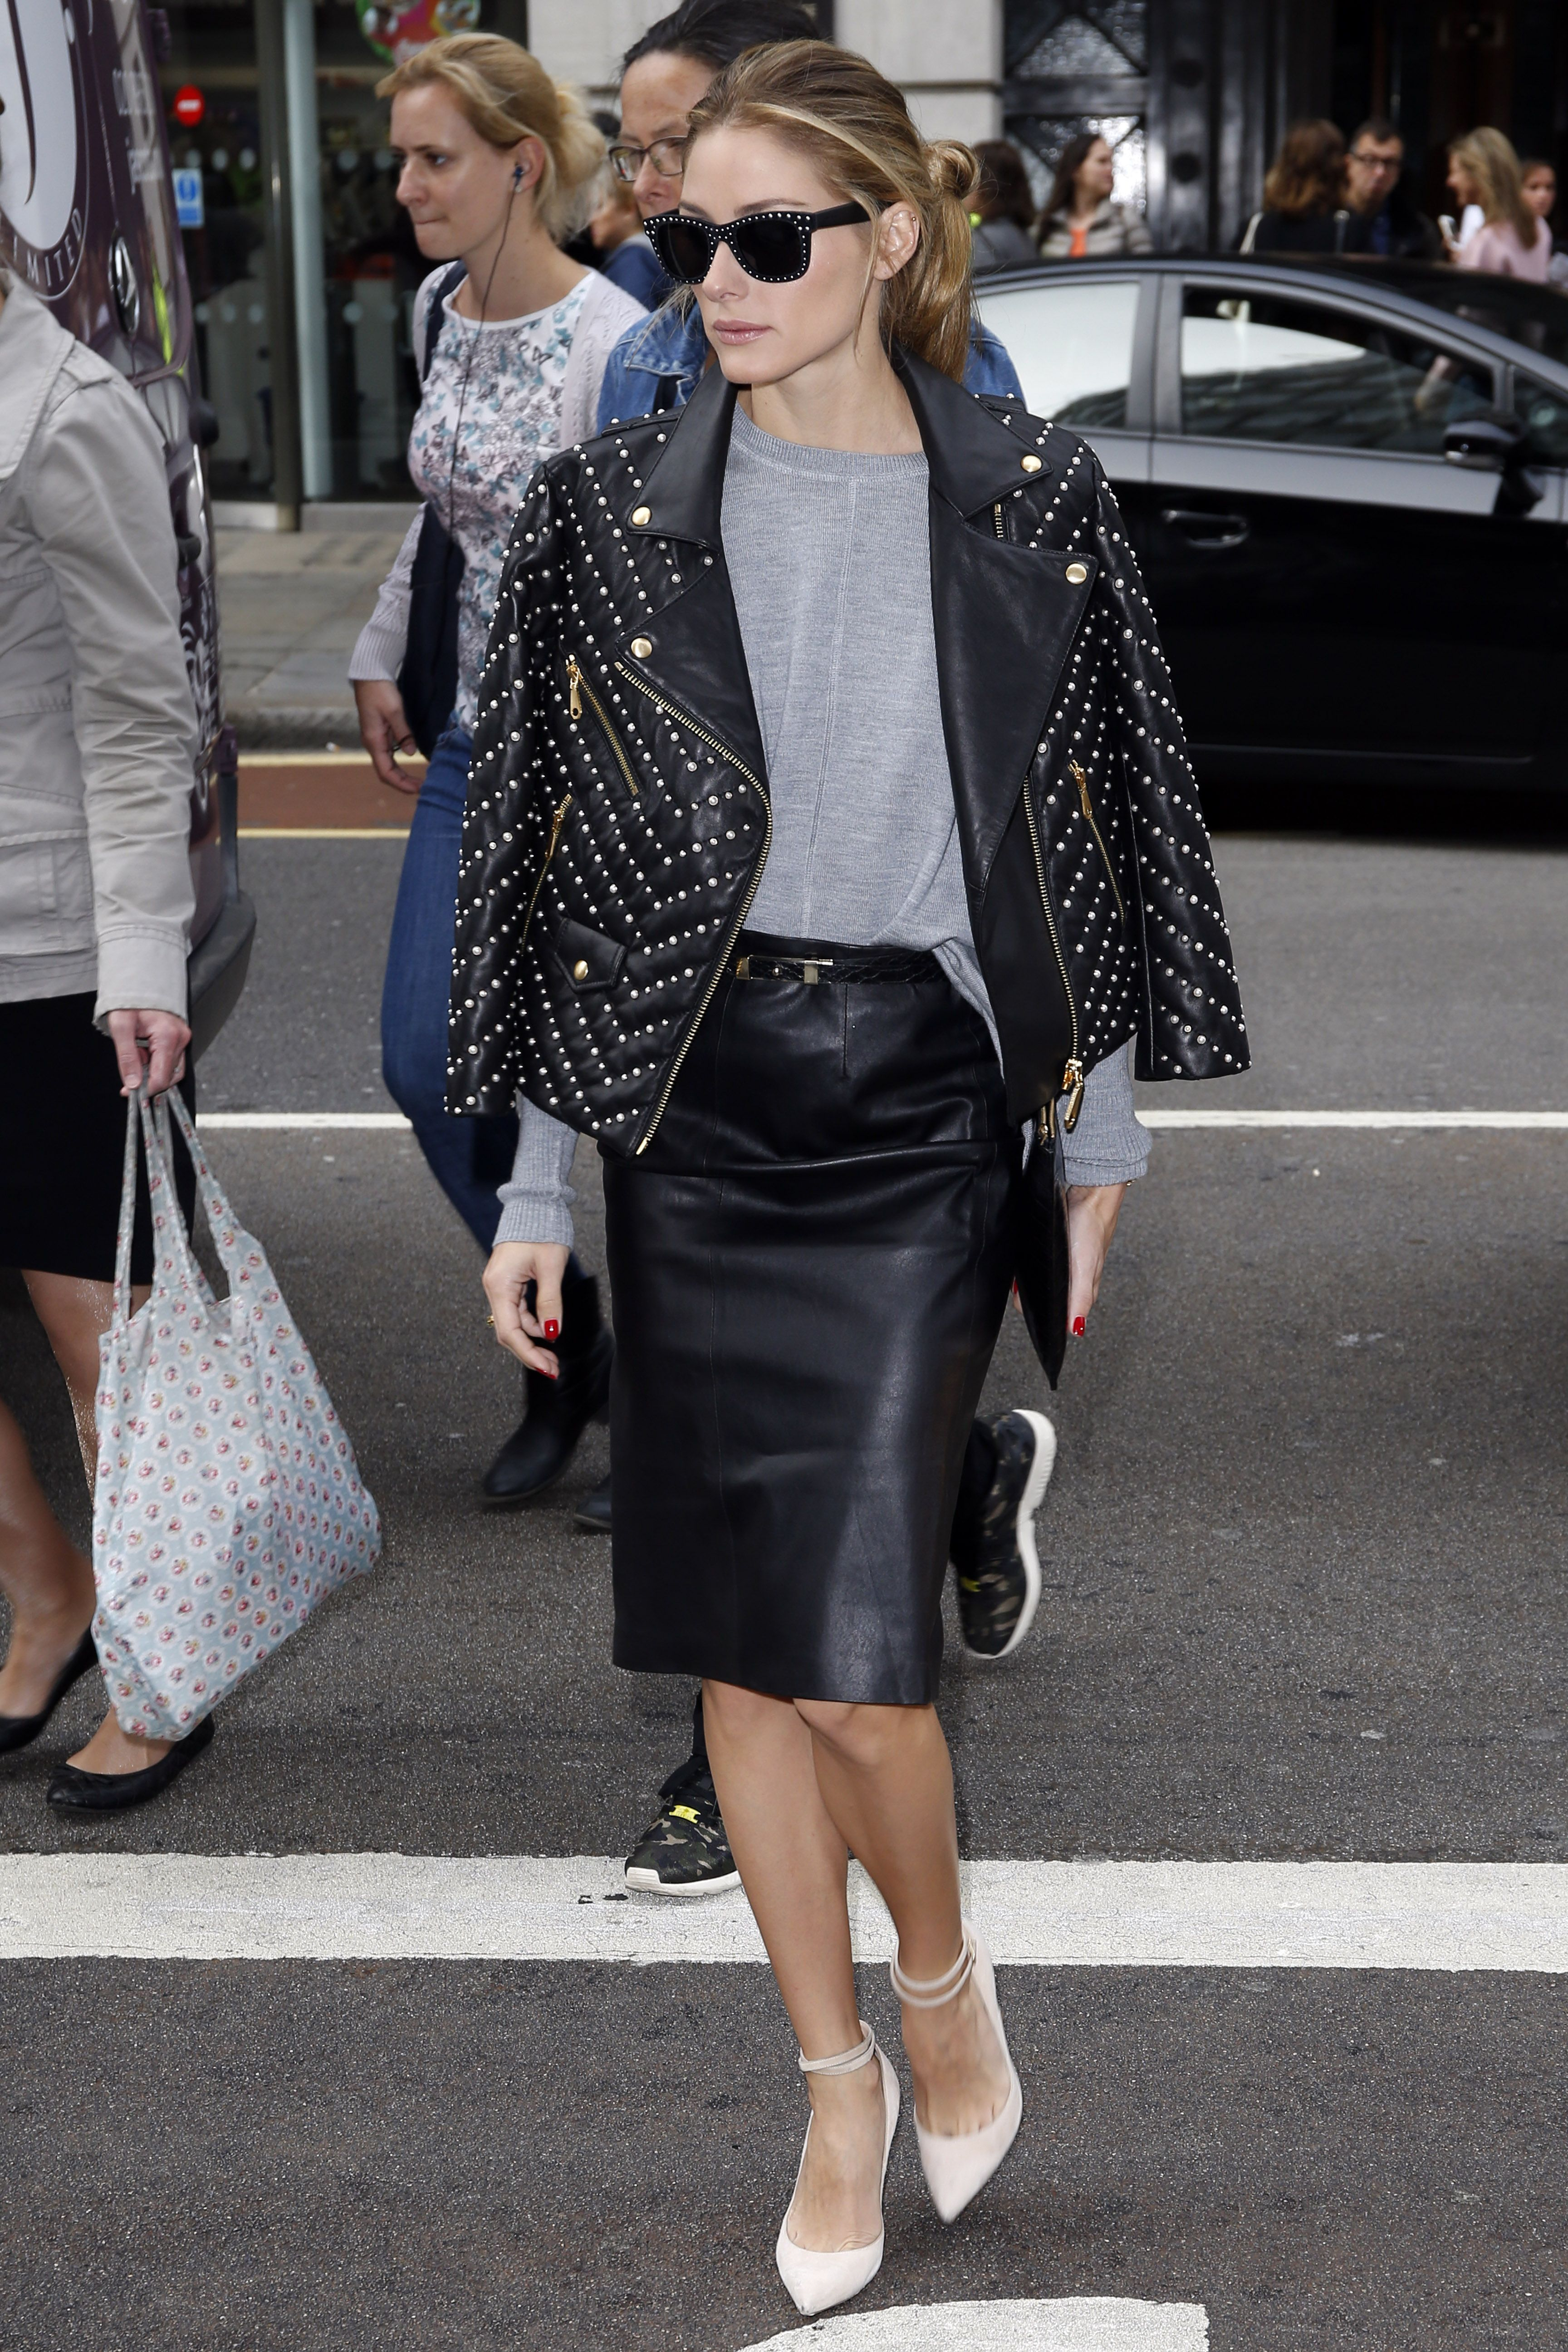 25 all time best pictures of olivia palermo style and fashion - 25 All Time Best Pictures Of Olivia Palermo Style And Fashion 37